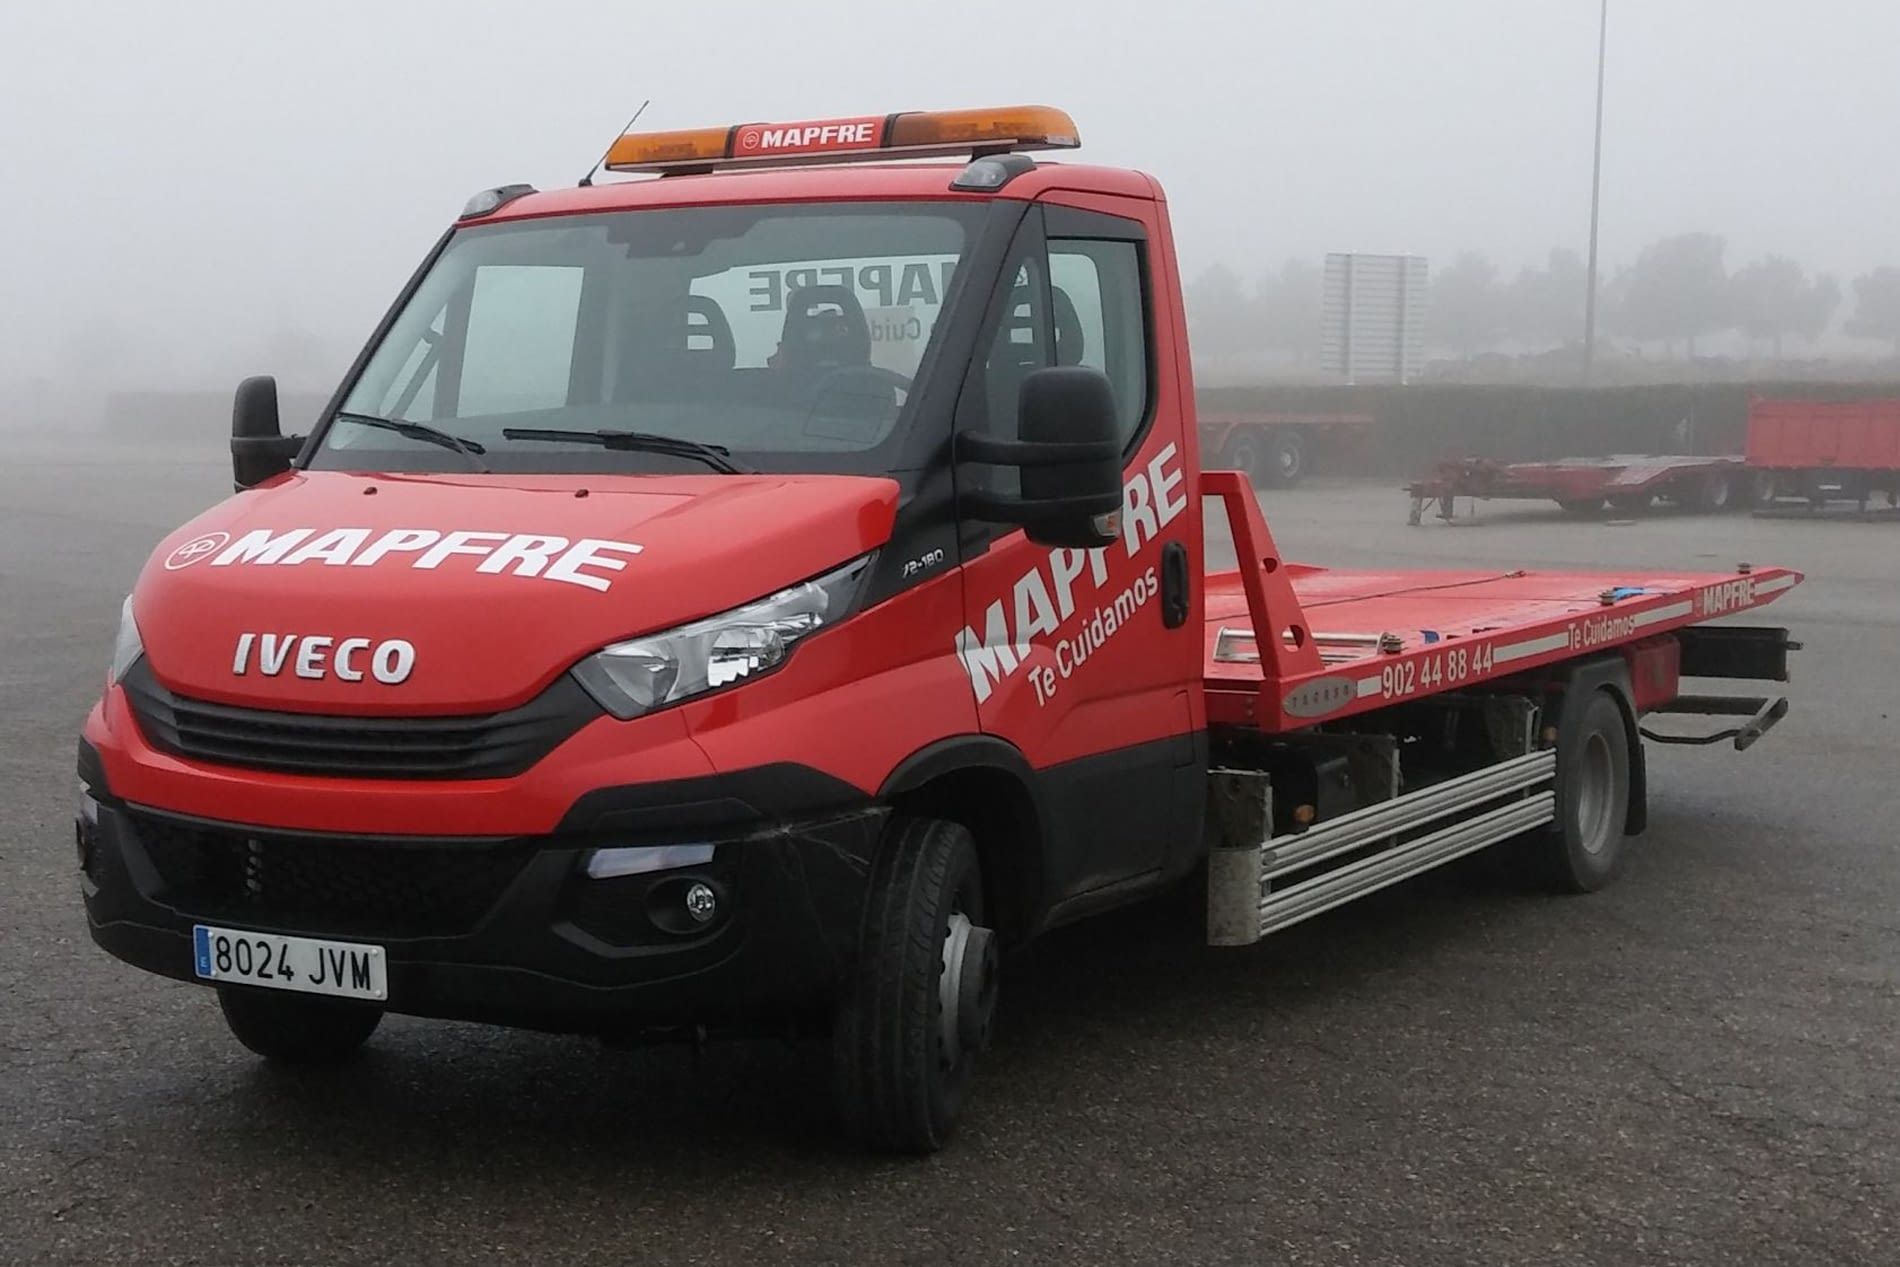 Camionet IVECO mapfre